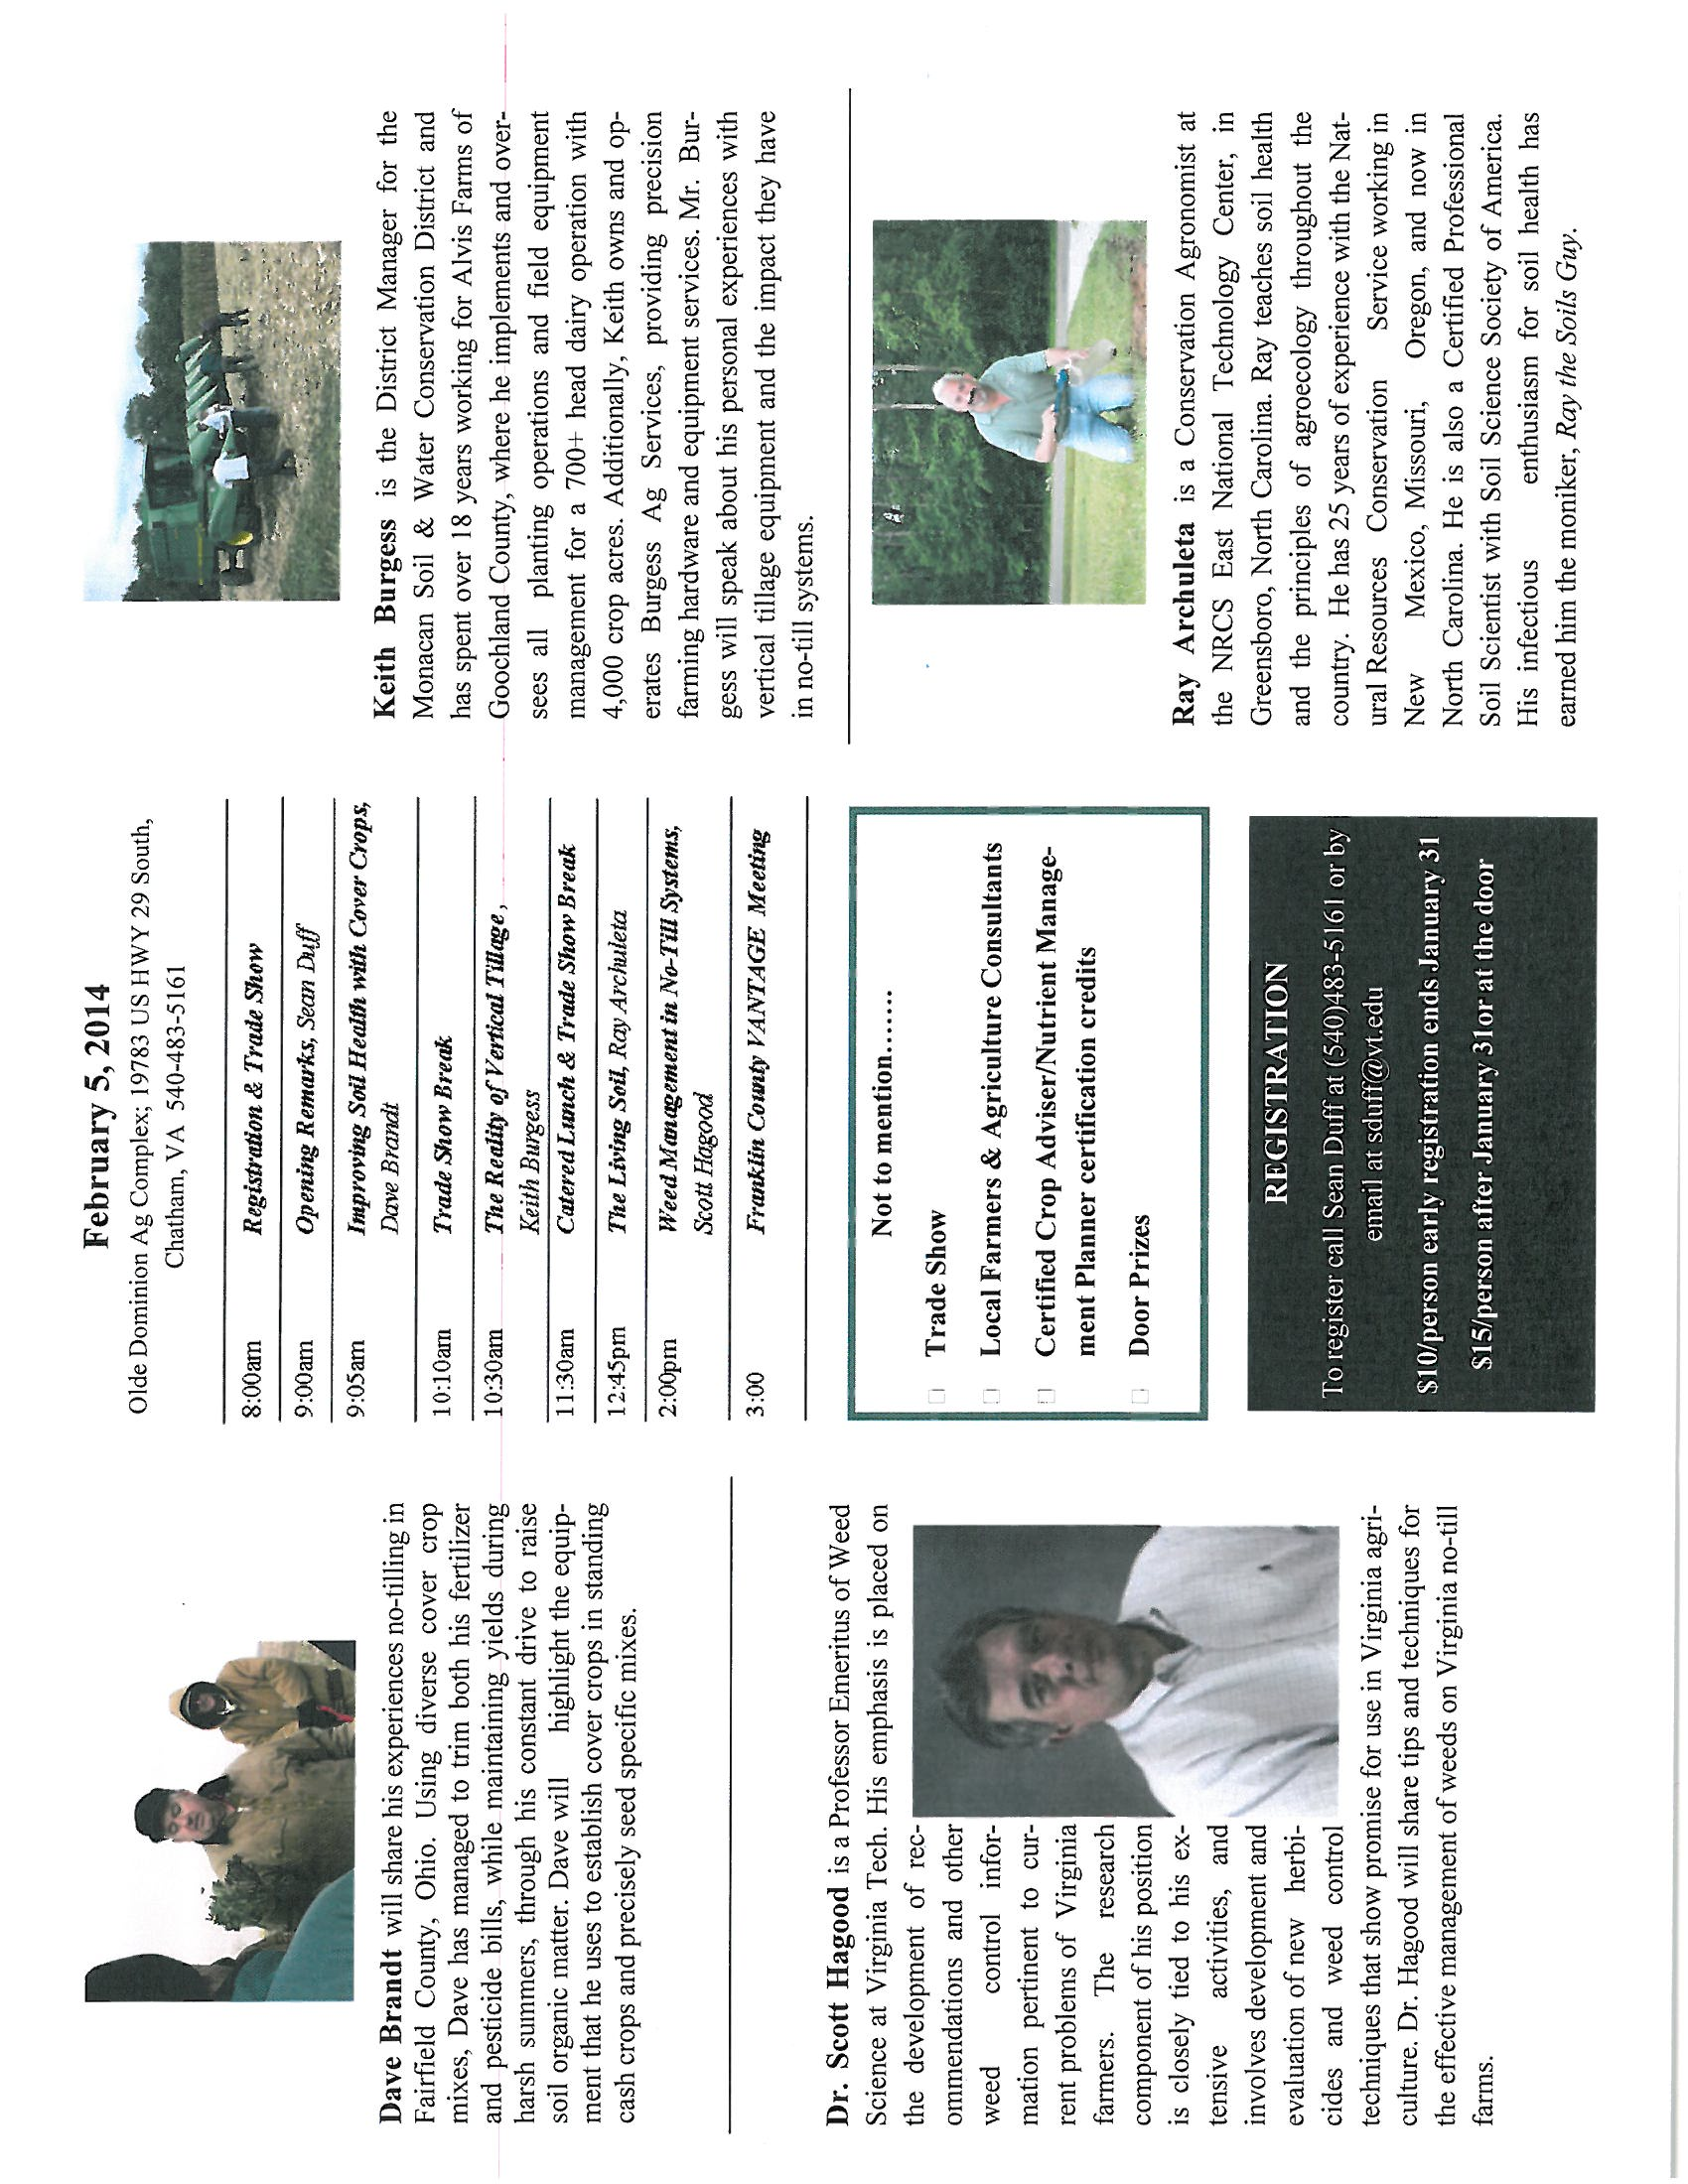 Brochure Page 2 of 2